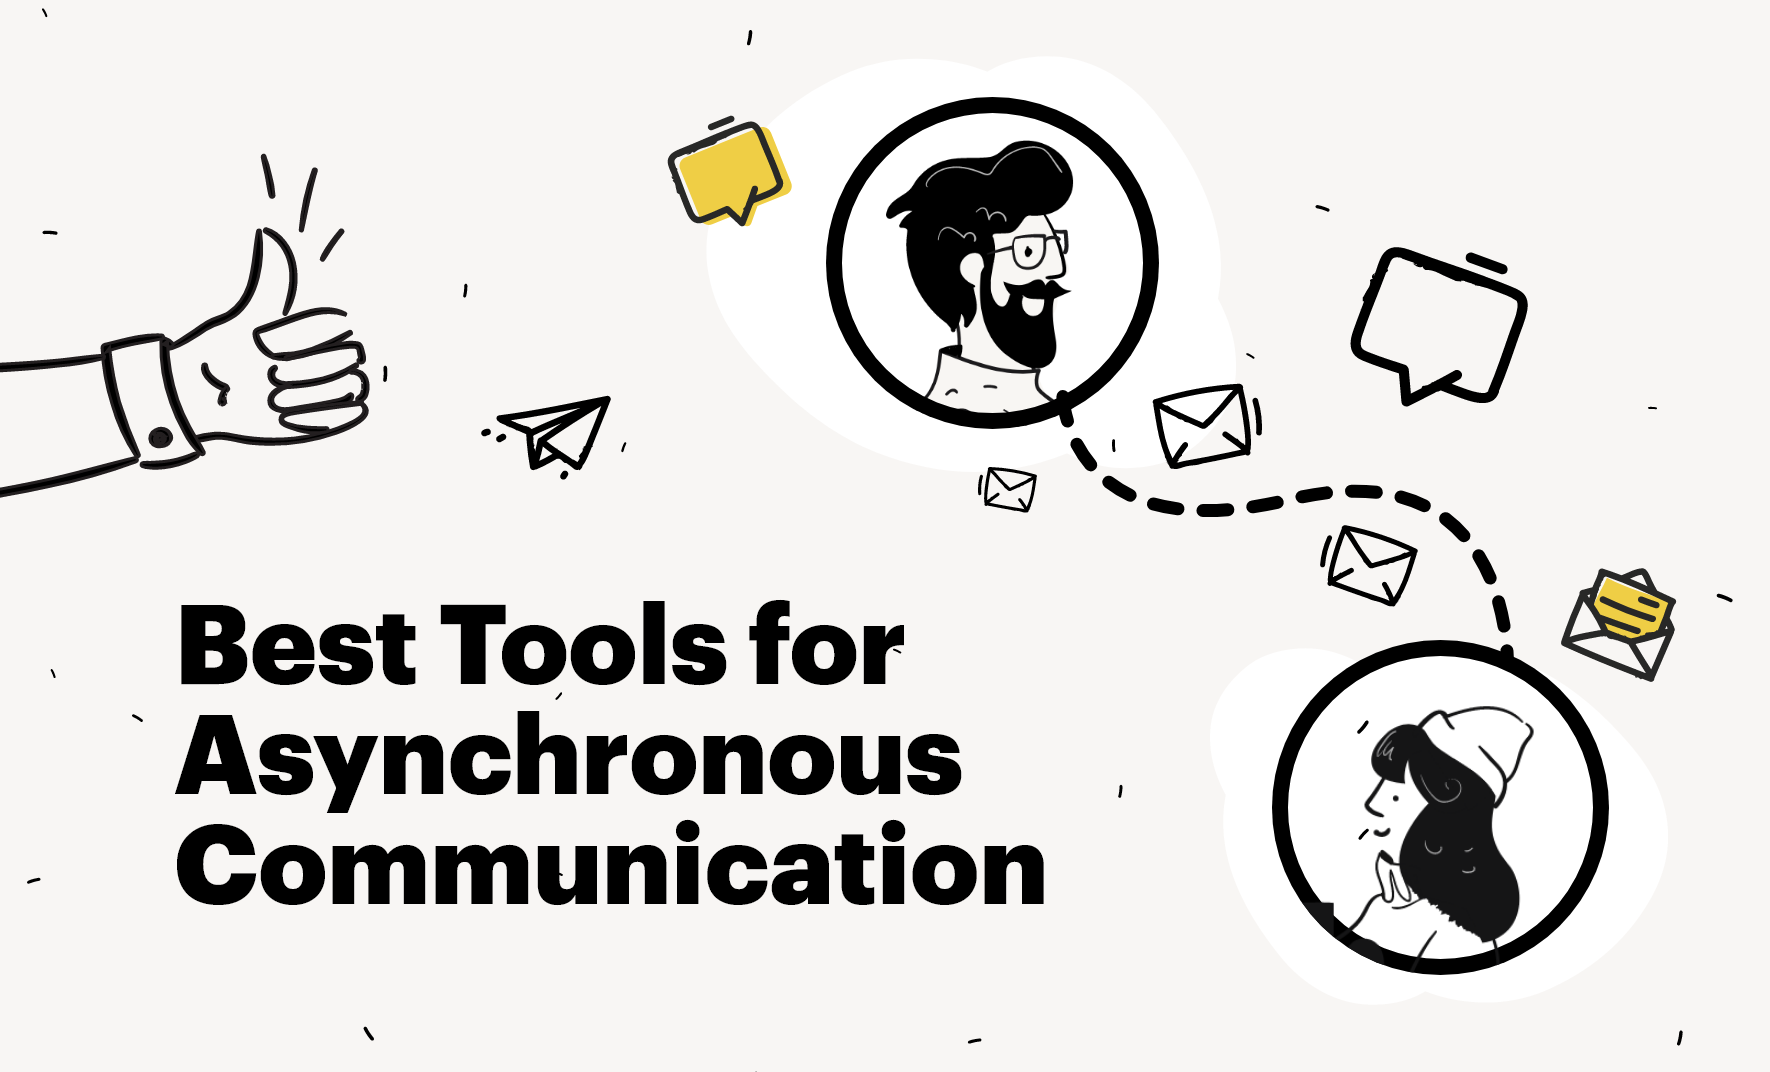 Best Tools for Asynchronous Communication